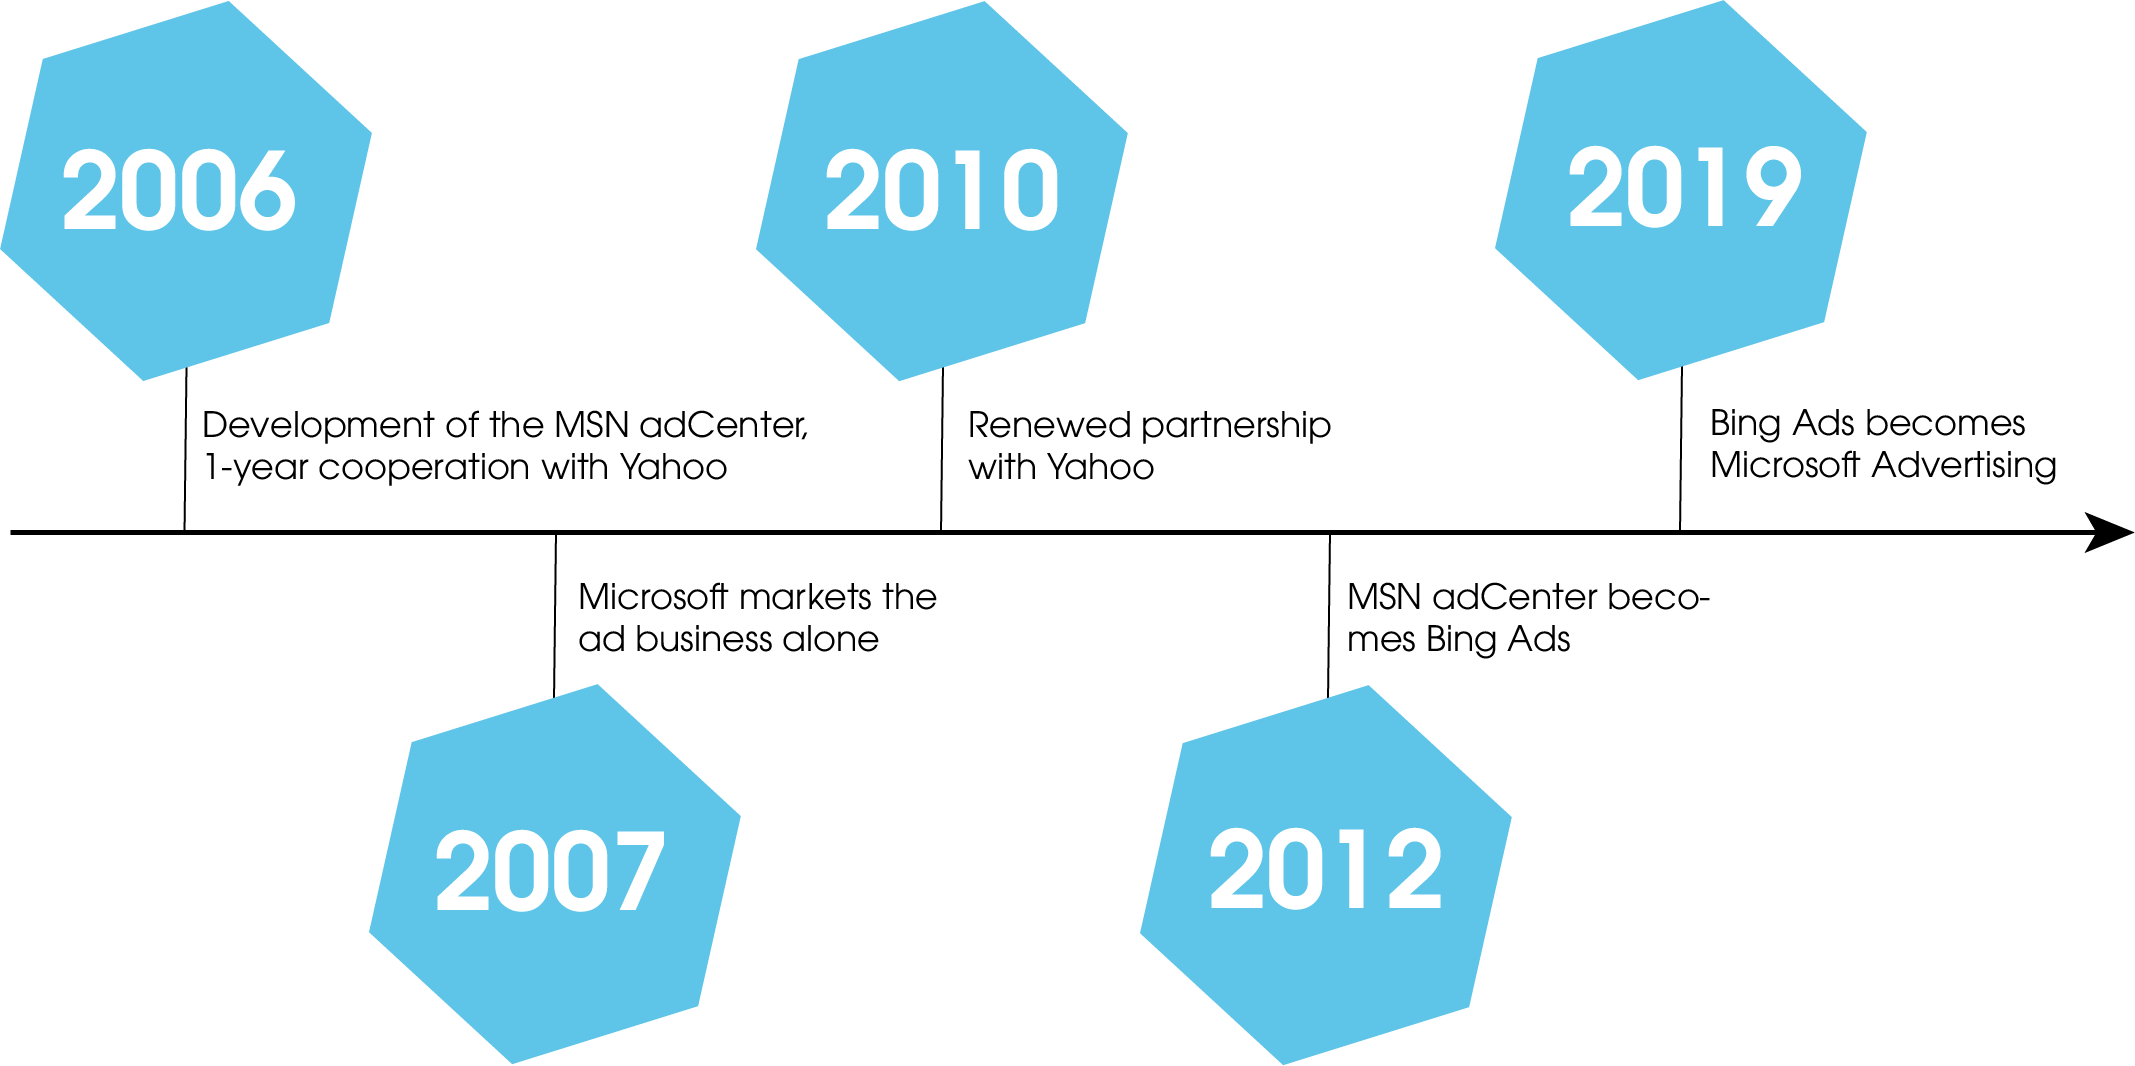 Timeline of the history of the Microsoft advertising network: - In 2006, Microsoft started developing the MSN adCenter and agreed with Yahoo to cooperate for one year - 2007 the cooperation ends and Microsoft markets the ad business alone - 2010 saw a renewed partnership with Yahoo - 2012 MSN adCenter is renamed to Bing Ads - 2019 Bing Ads is renamed to Microsoft Advertising